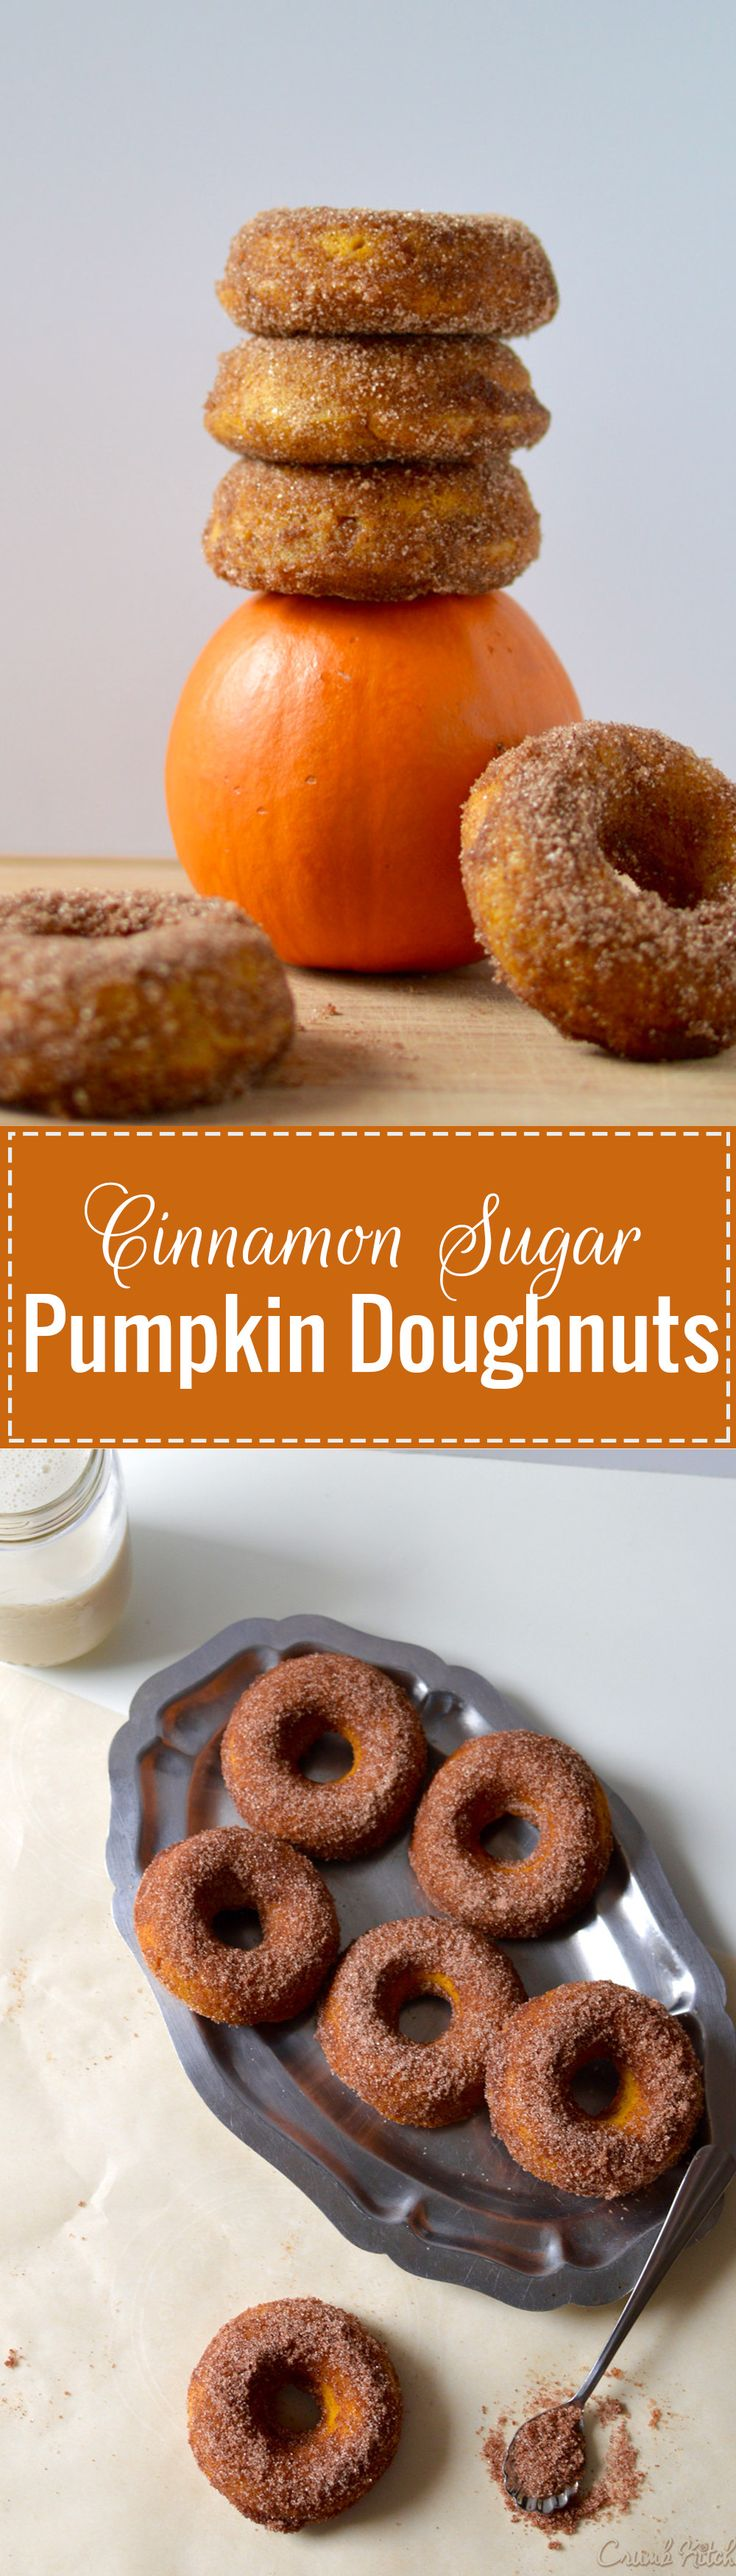 A light sprinkle of cinnamon and sugar coat these soft and chewy baked pumpkin doughnuts for a perfect fall-themed dessert or brunch centrepiece. | crumbkitchen.com